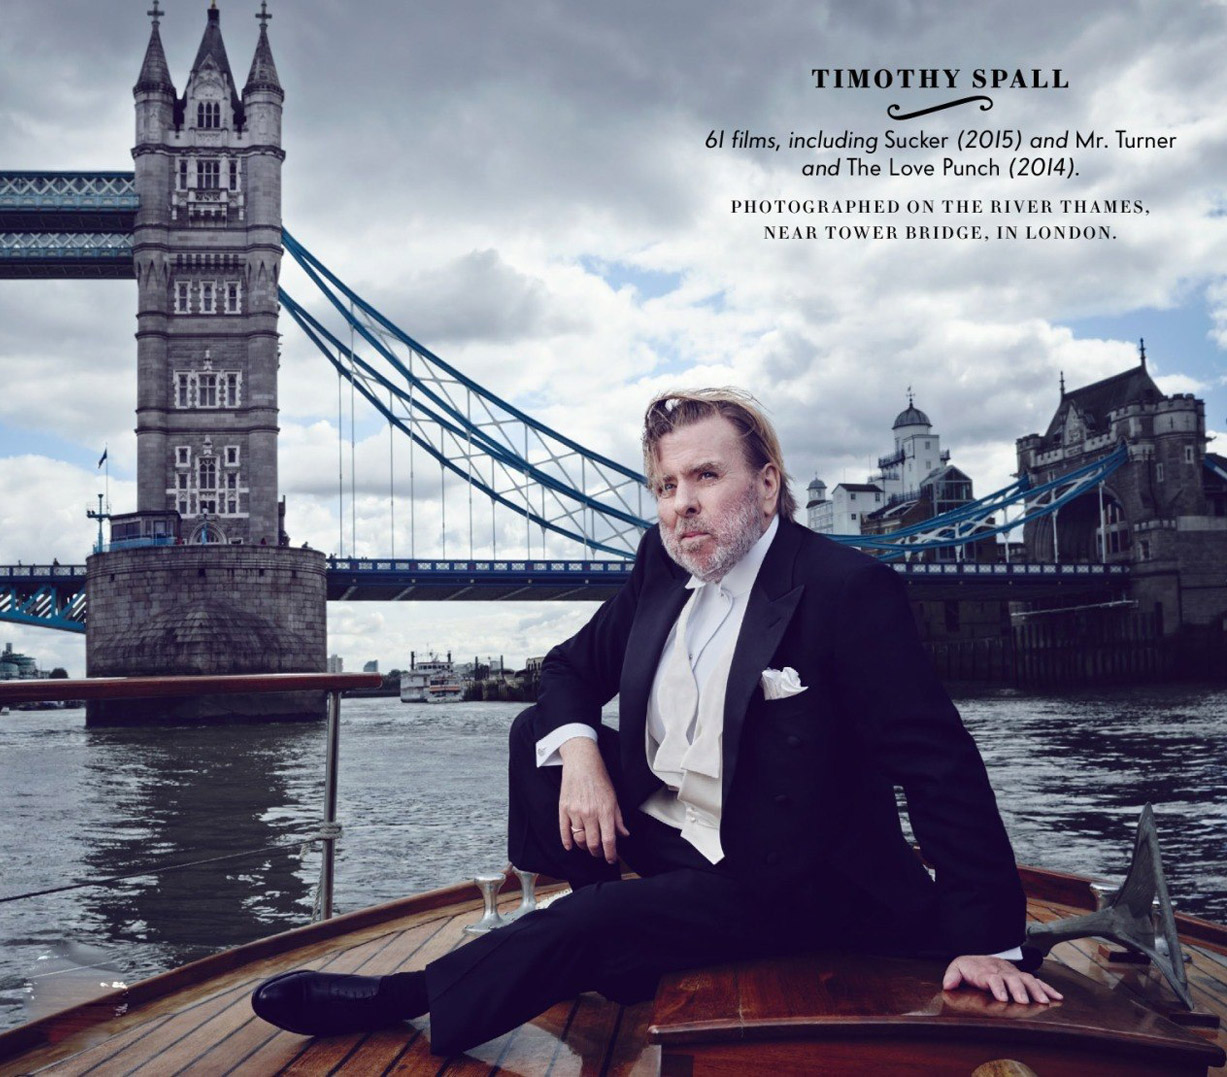 Лучшие британские актеры в проекте The 2015 Hollywood Portfolio by Jason Bell in Vanity Fair march 2015 - Тимоти Сполл / Timothy Spall